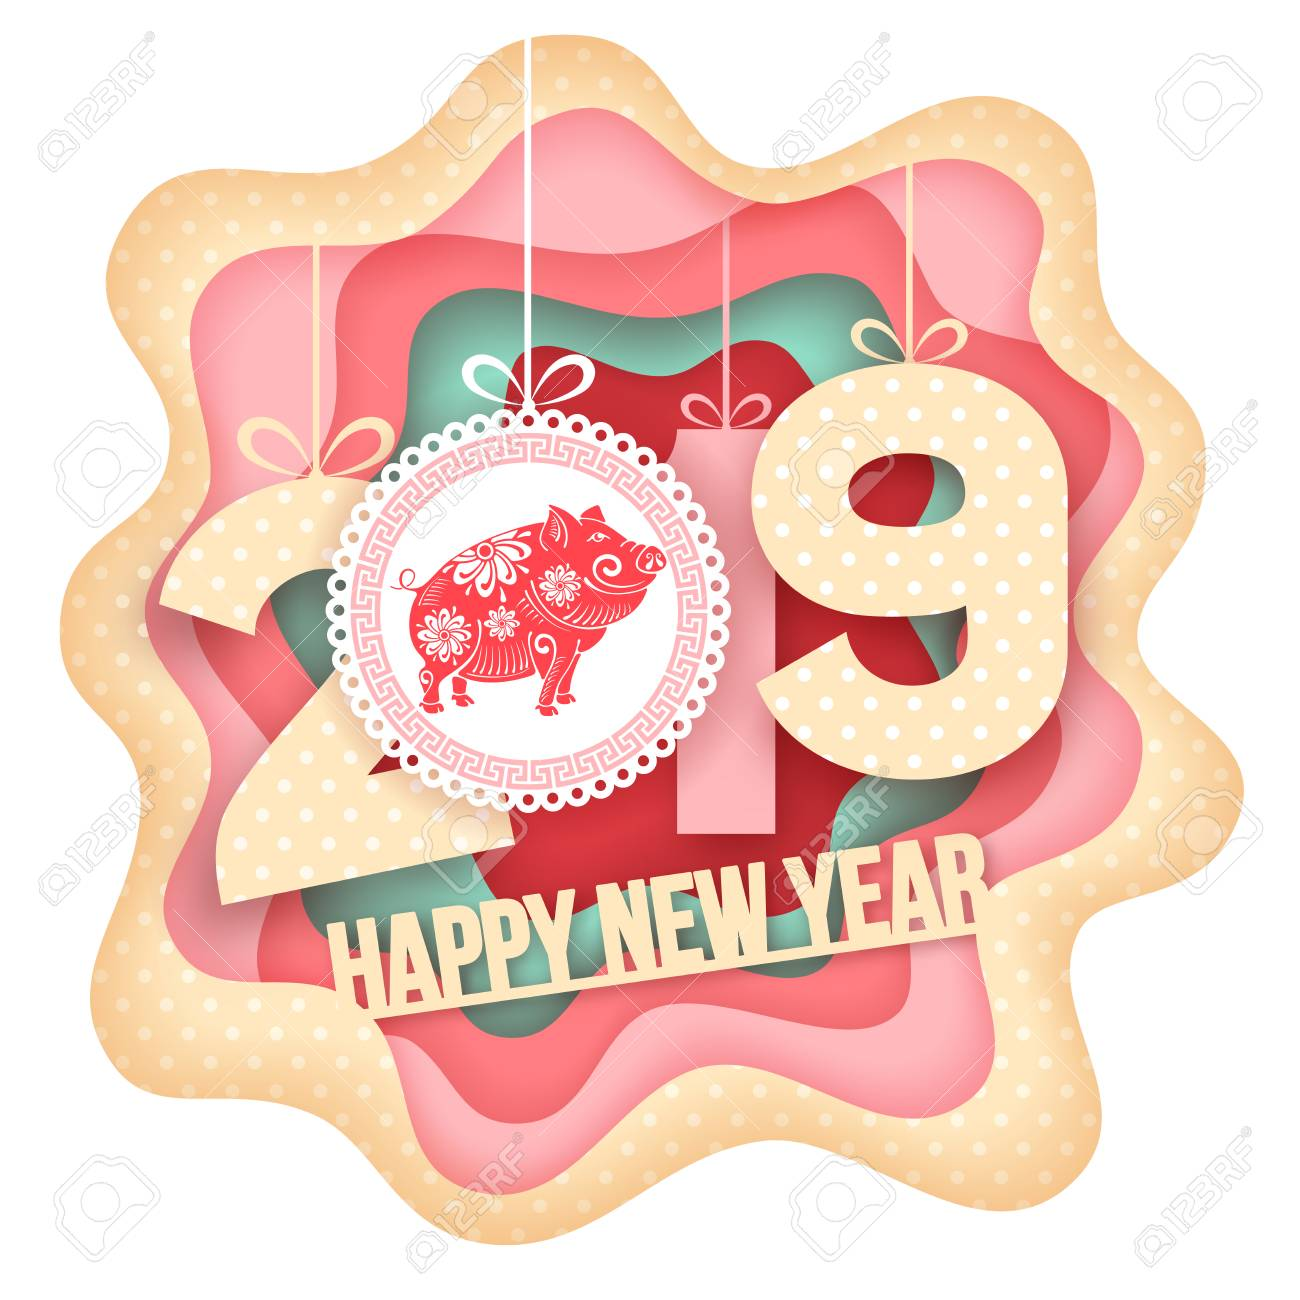 Happy New Year greeting. Paper art carving style design with digits 2019 and symbol of the year - pig. Vector illustration. - 102963774